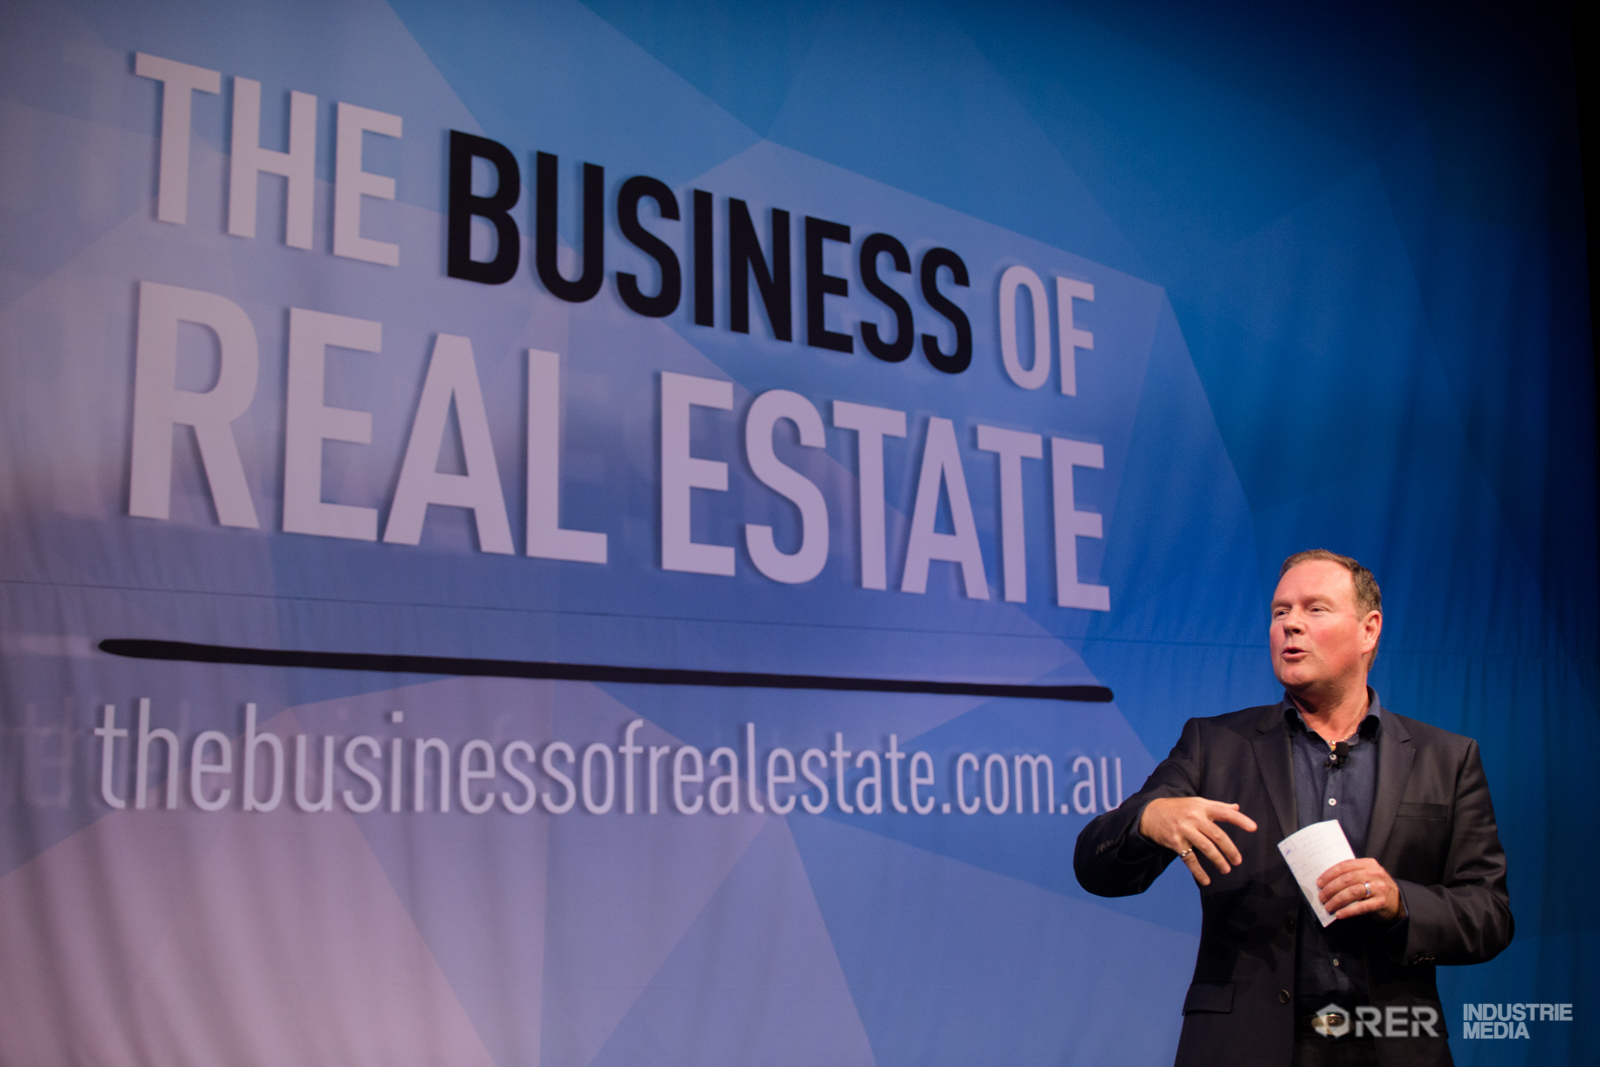 https://www.thebusinessofrealestate.com.au/wp-content/uploads/2016/09/RER_BUSINESS_OF_REAL_ESTATE_DAY_2-31.jpg